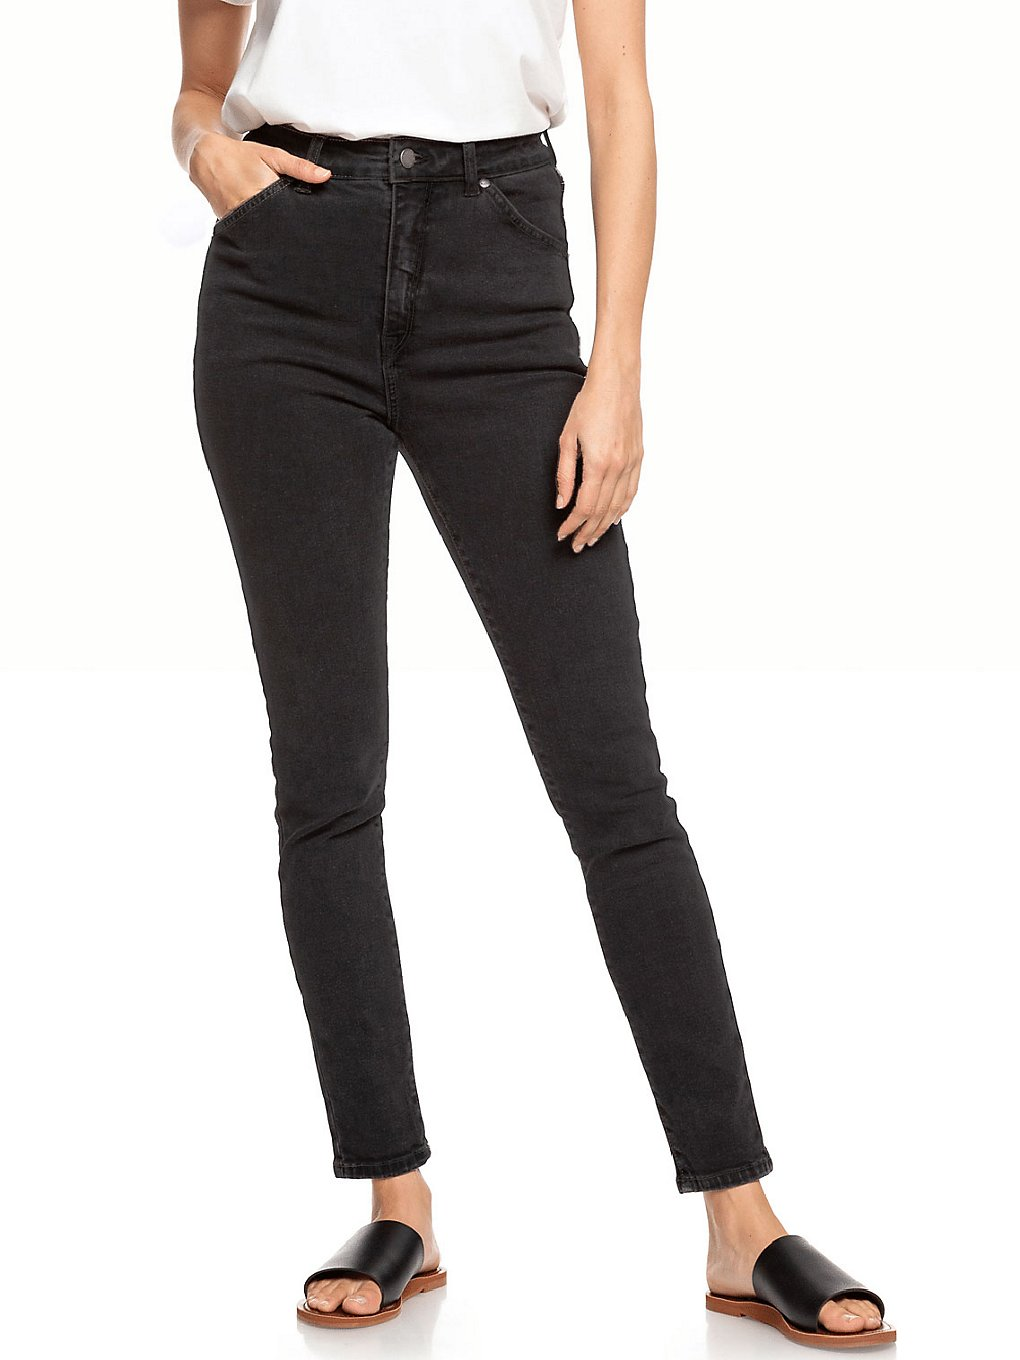 roxy another time to surf jeans anthracite